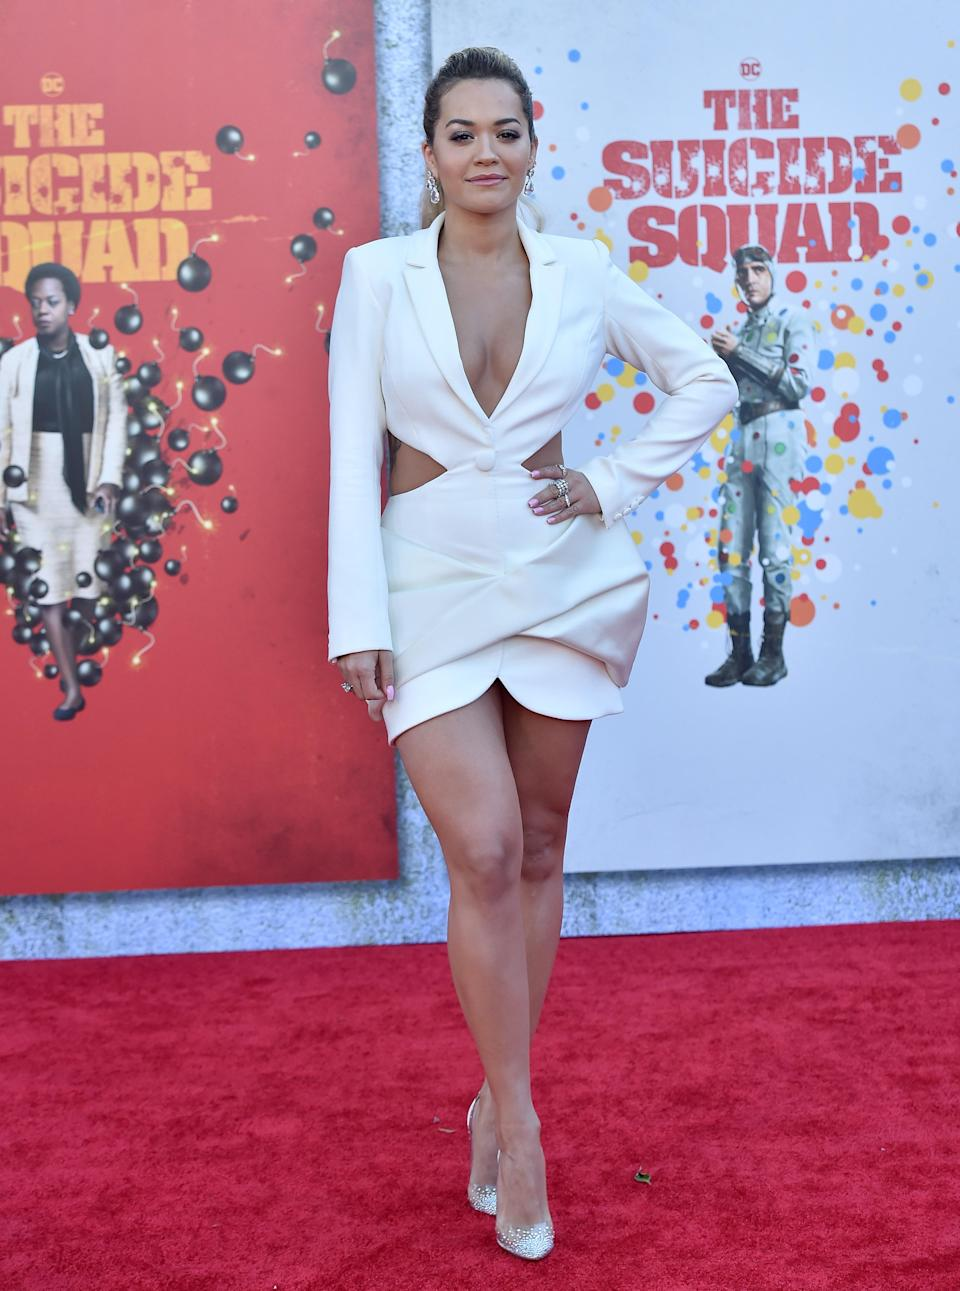 """Rita Ora attends the premiere of """"The Suicide Squad"""" at The Landmark Westwood in Los Angeles, CA. - Credit: AXELLE/BAUER-GRIFFIN / MEGA"""